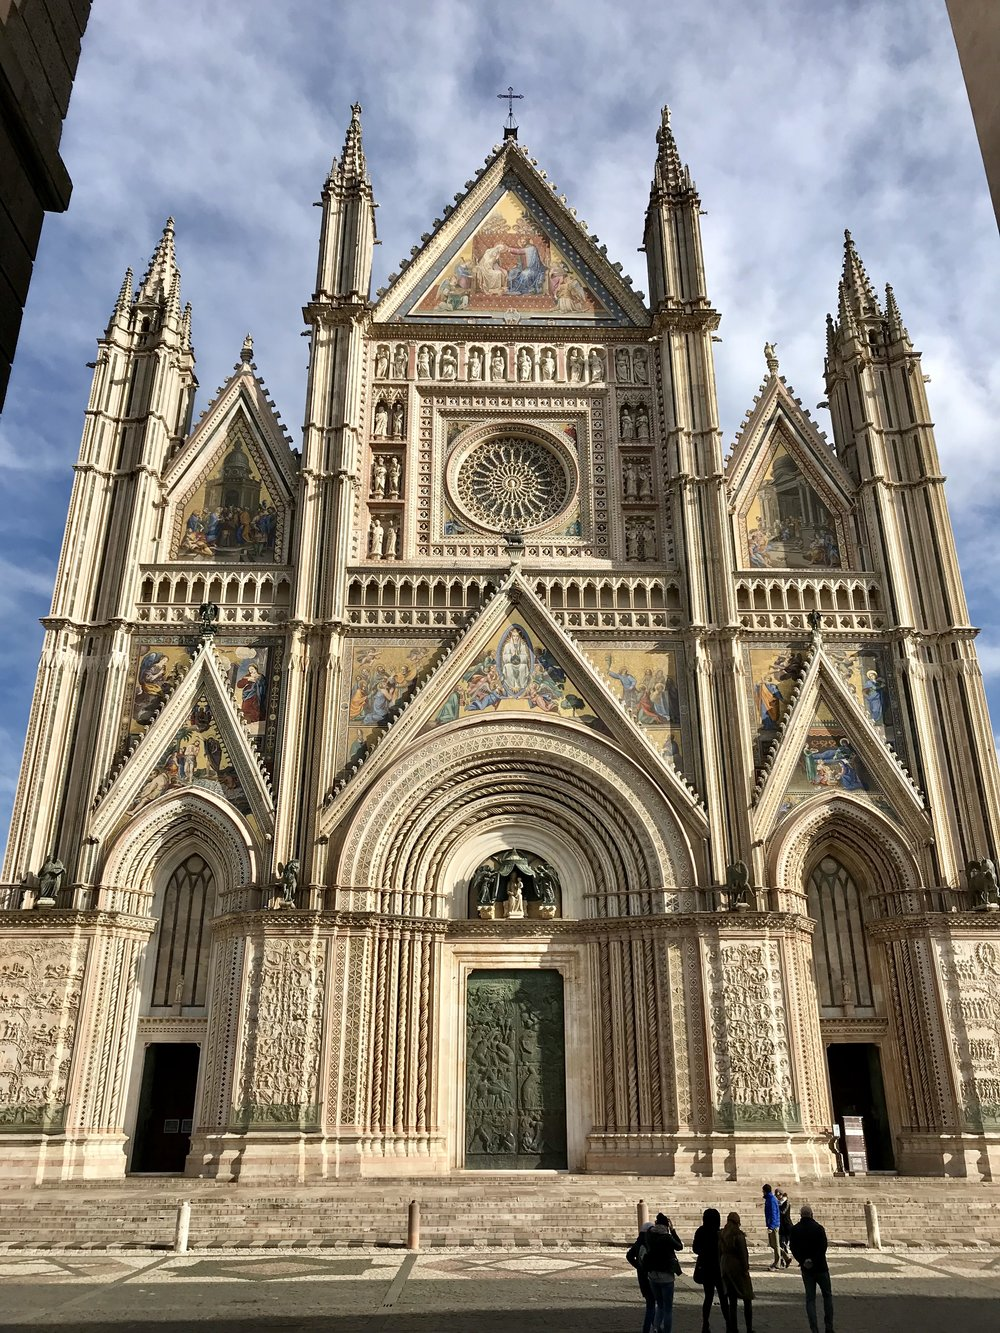 The Duomo di Orvieto, one of the largest cathedrals in the region.